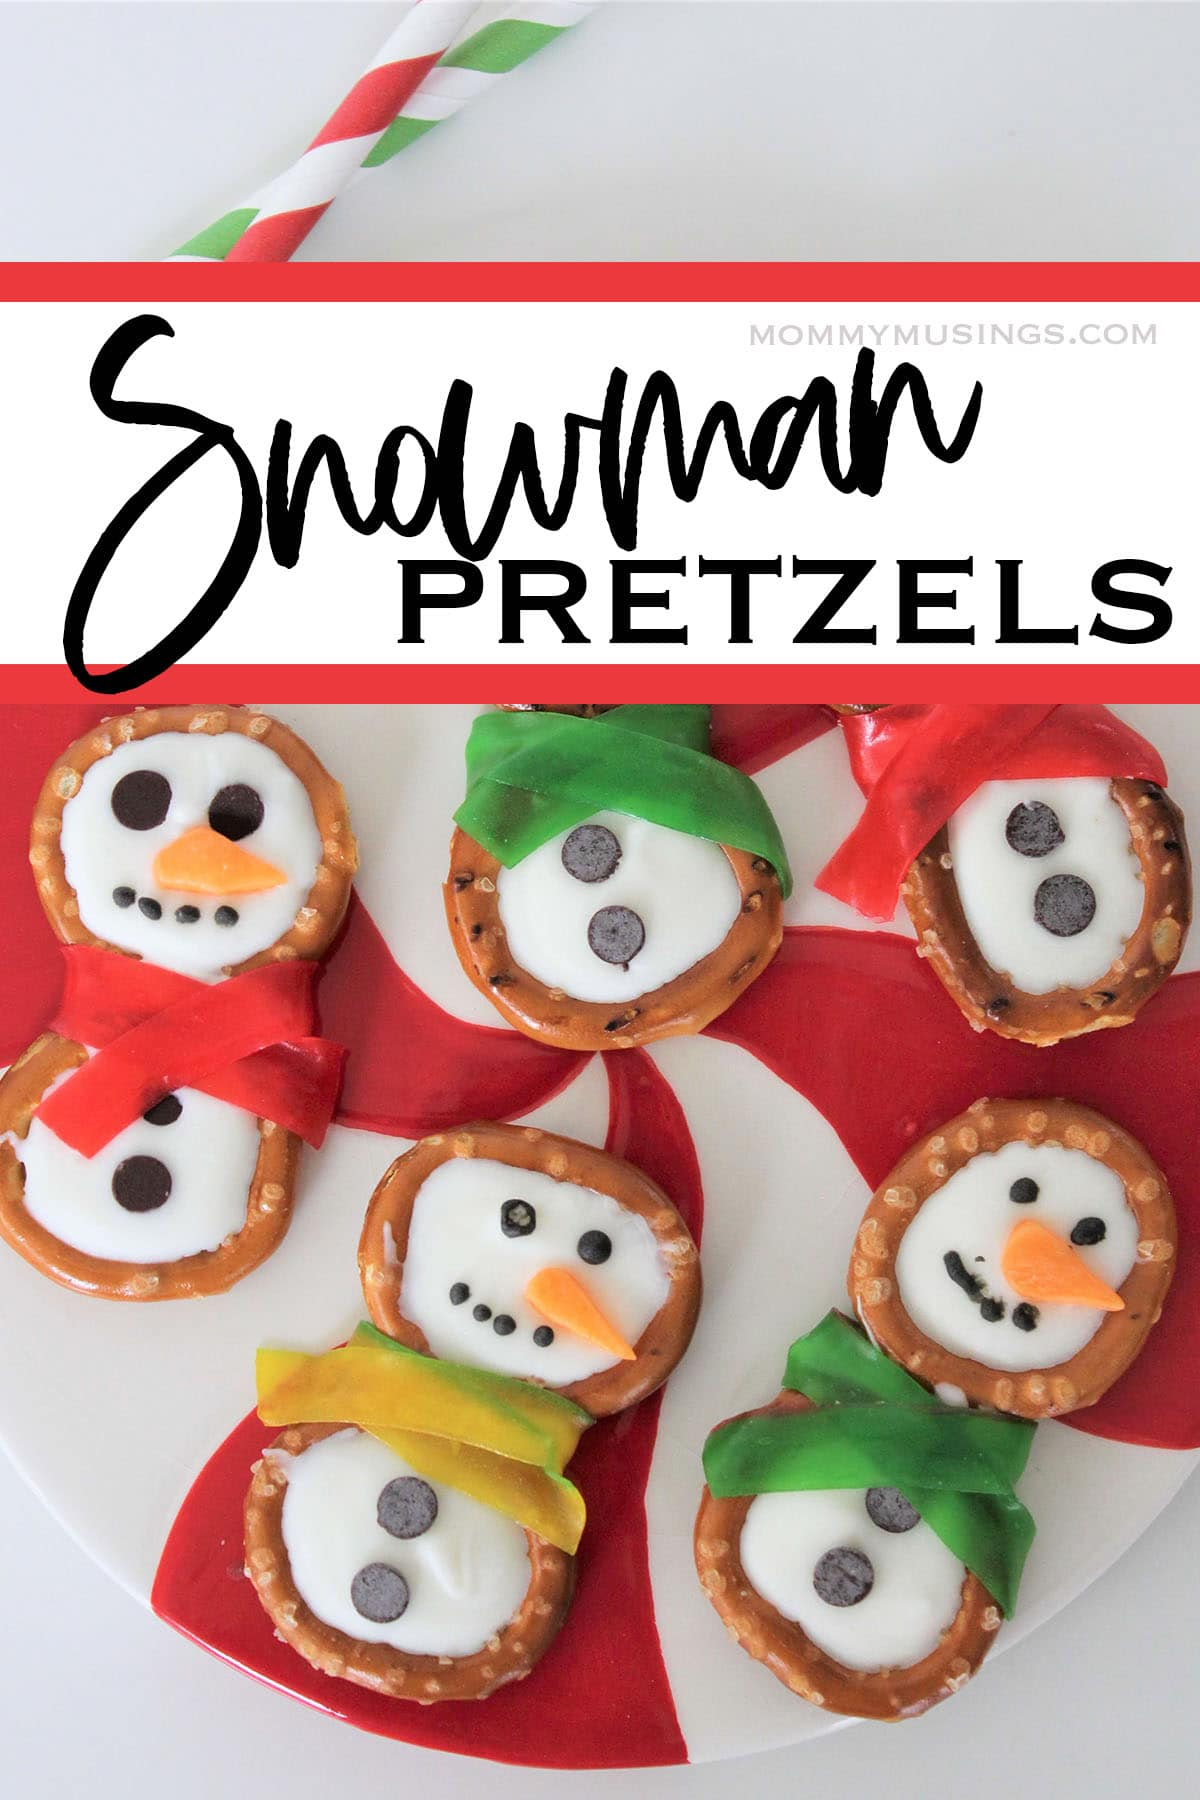 several pretzel snowman snacks with text which reads snowman pretzels